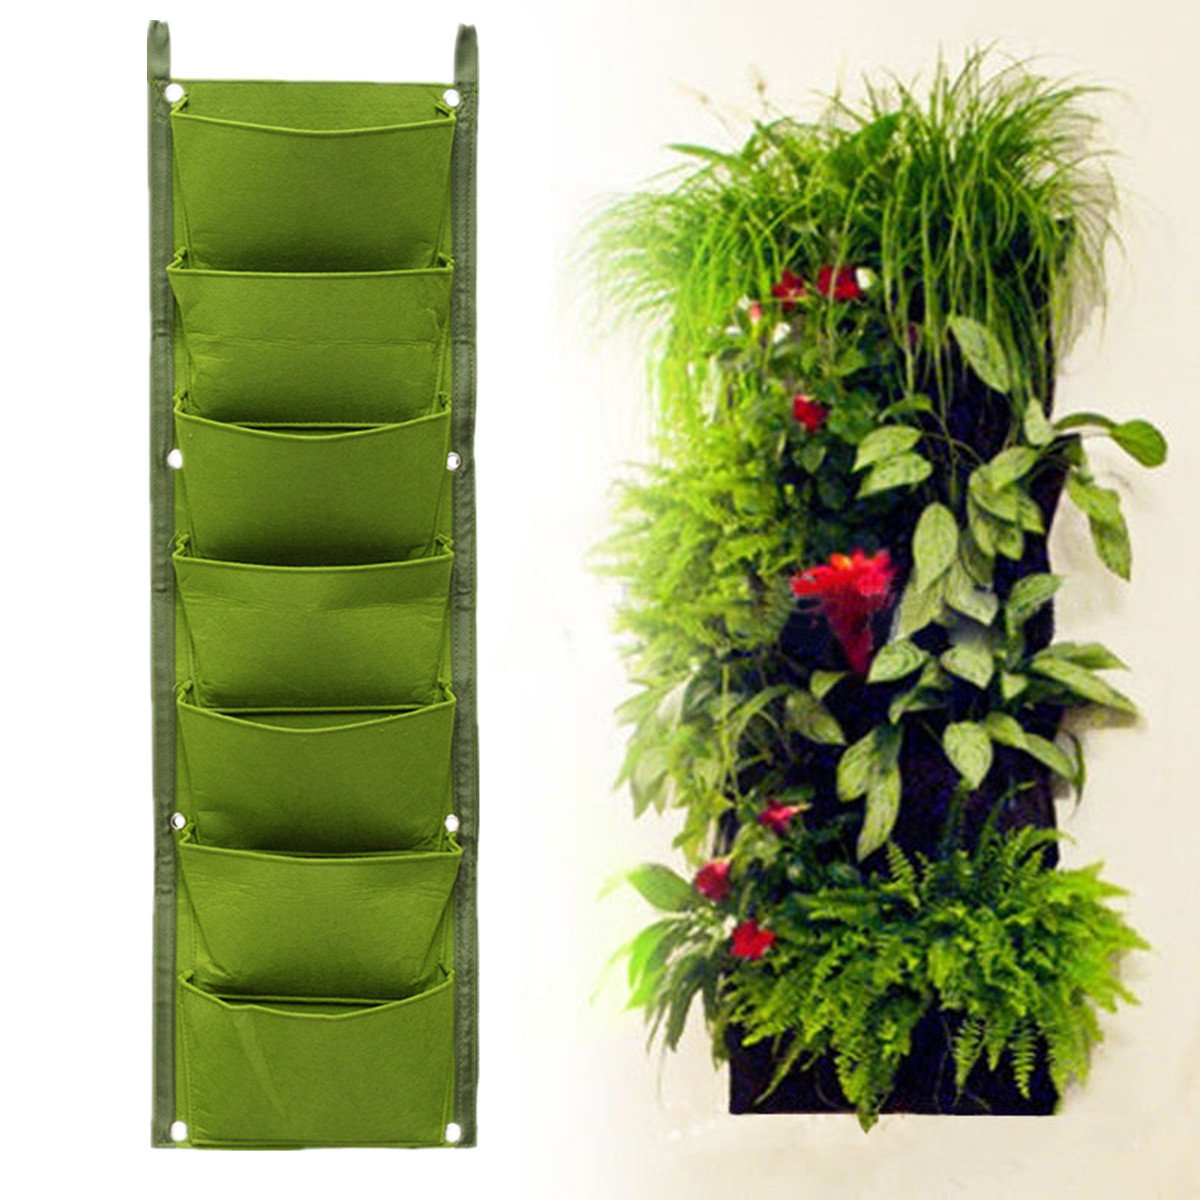 7 Pockets Planting Bags Garden Vertical Gardening Hanging Wall Seedling  Wall Planter Growing Bags